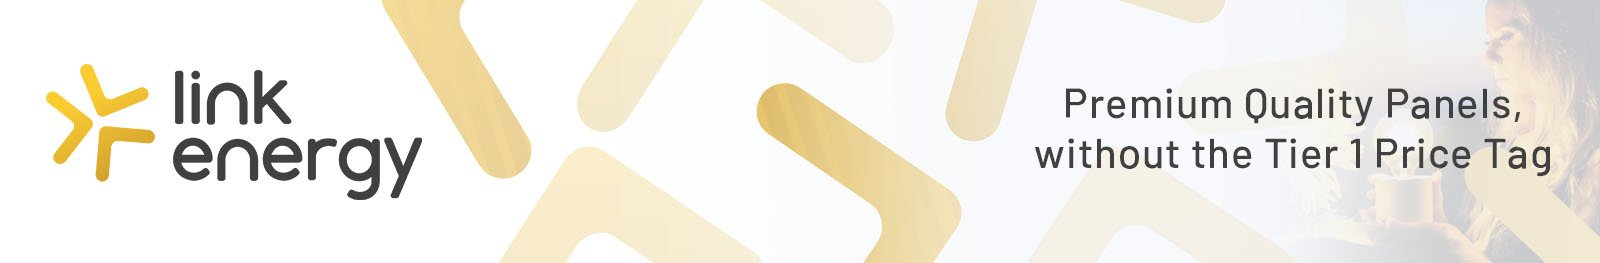 Link Energy product banner